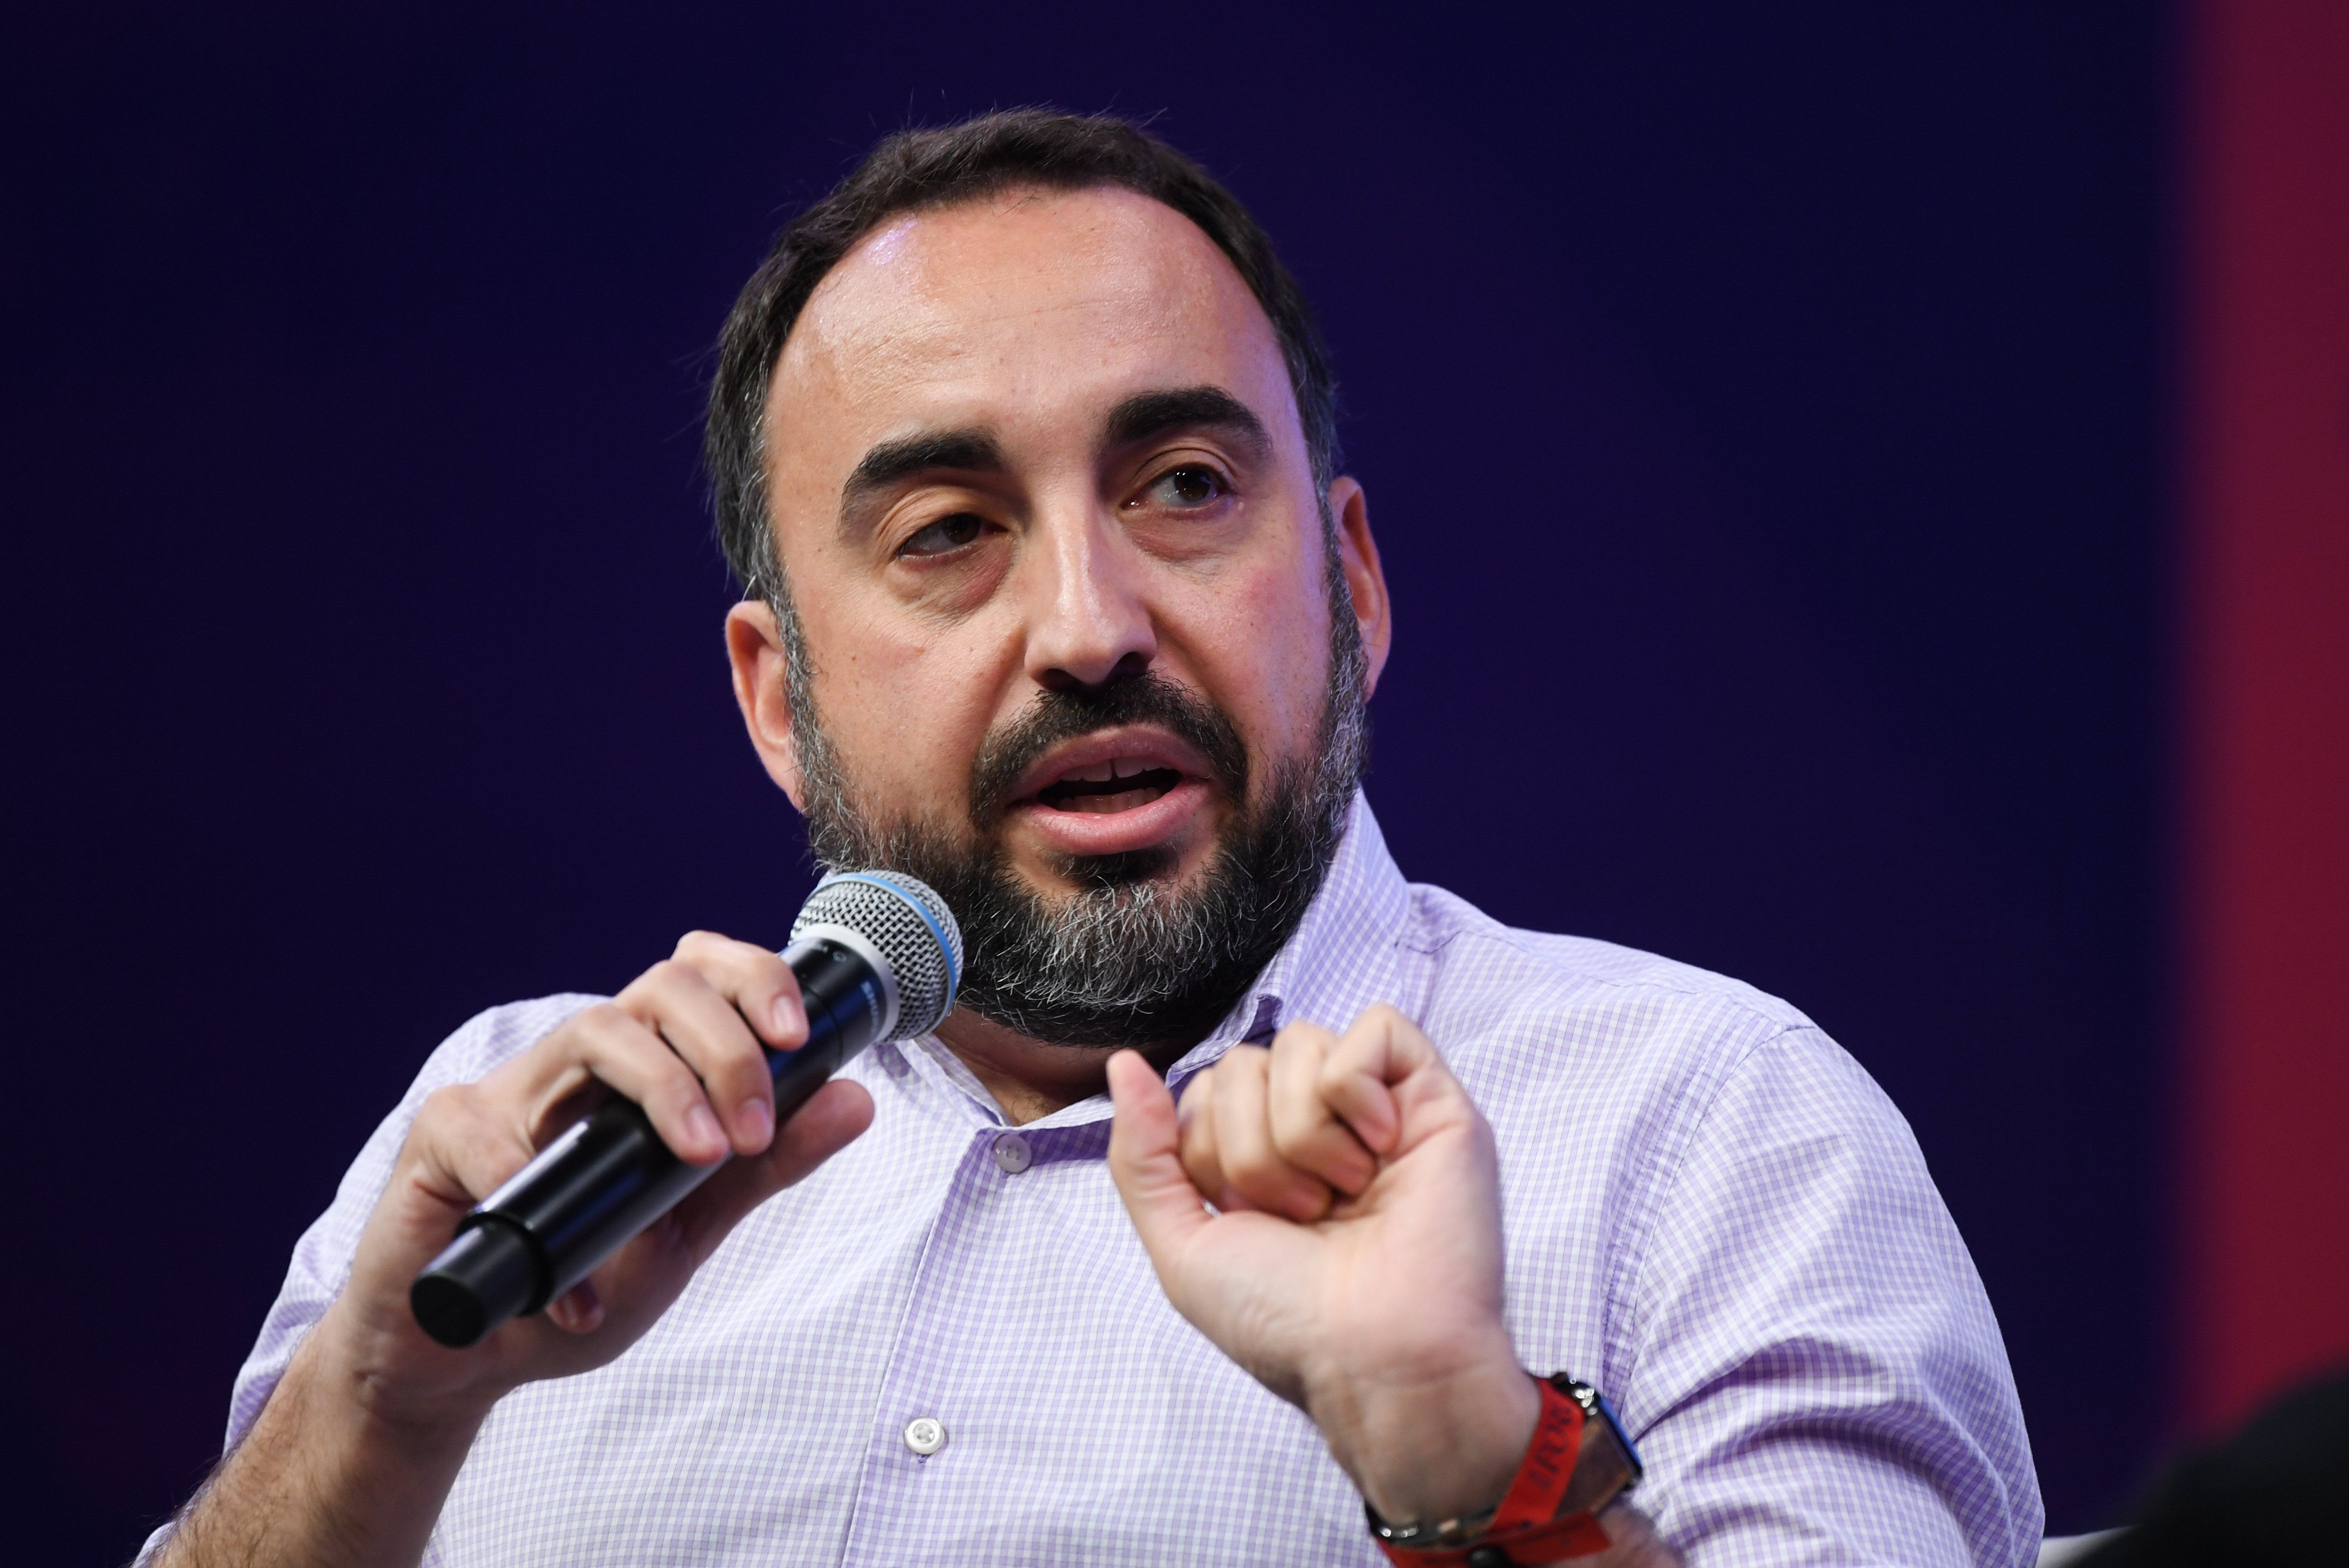 Toronto , Canada - 21 May 2019; Alex Stamos, Adjunct Professor, Stanford University, on Centre Stage during day one of Collision 2019 at Enercare Center in Toronto, Canada. (Photo By Stephen McCarthy/Sportsfile via Getty Images)